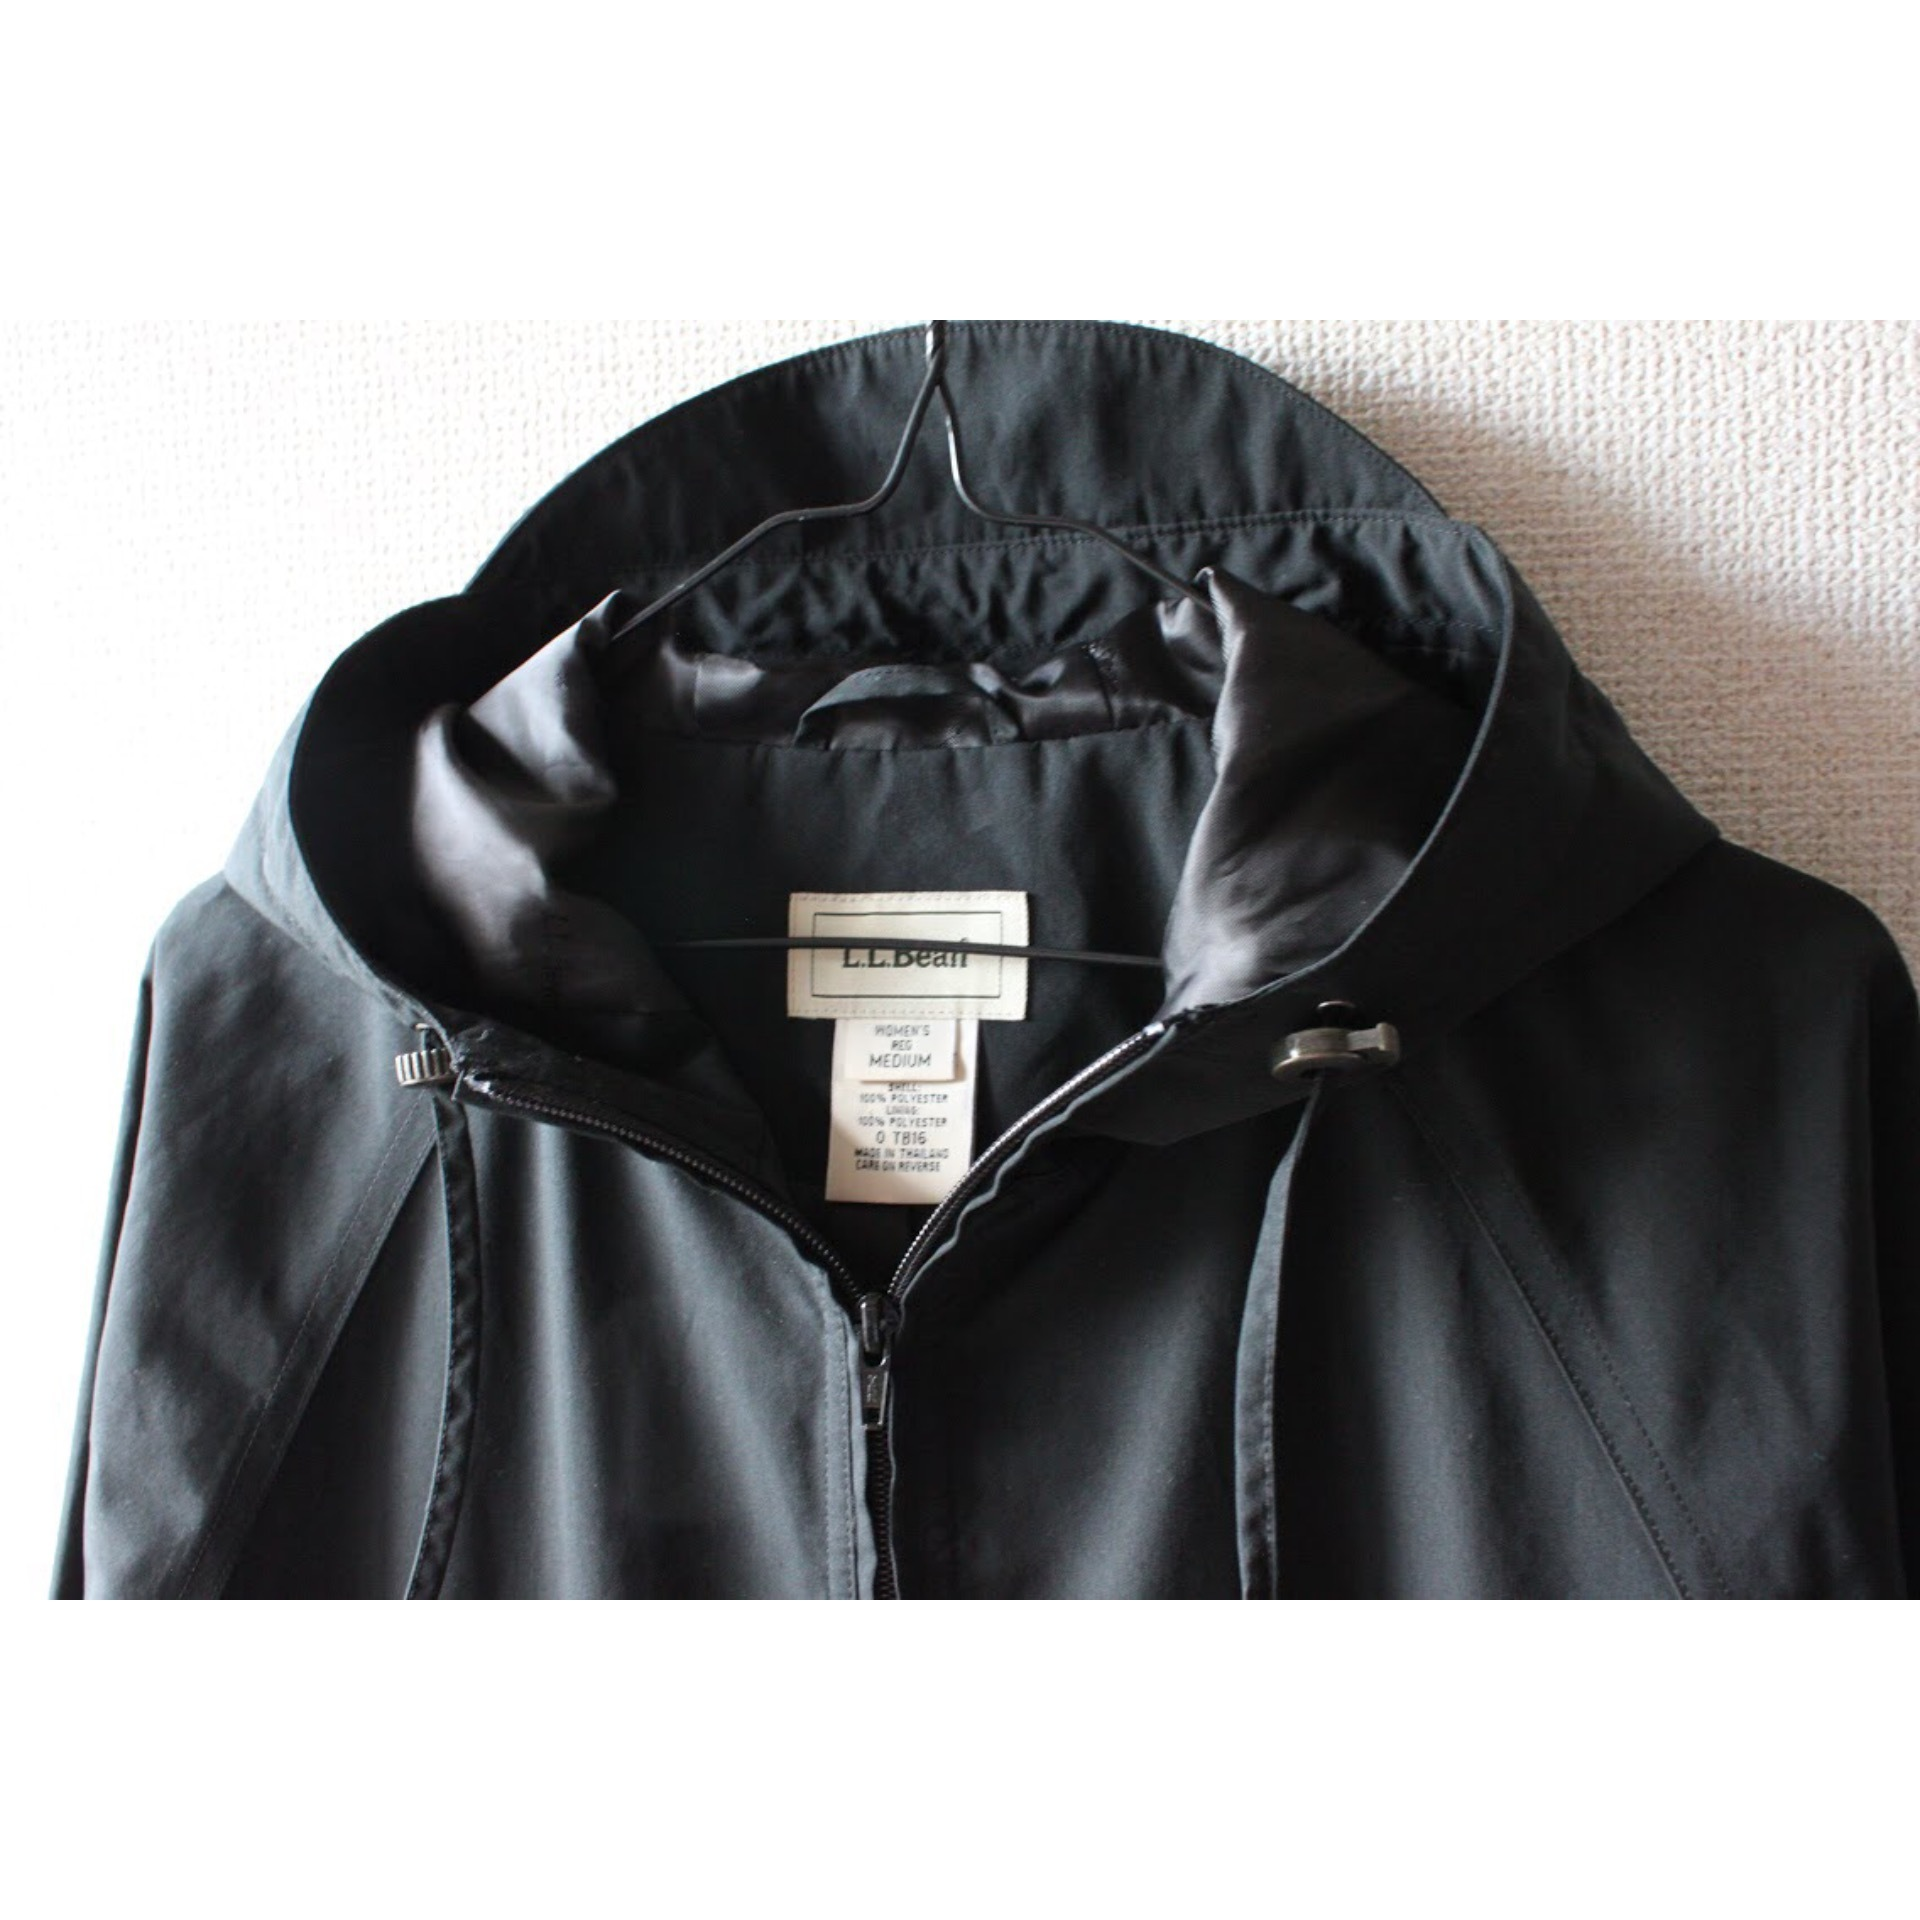 Vintage hooded zip coat by L.L.Bean